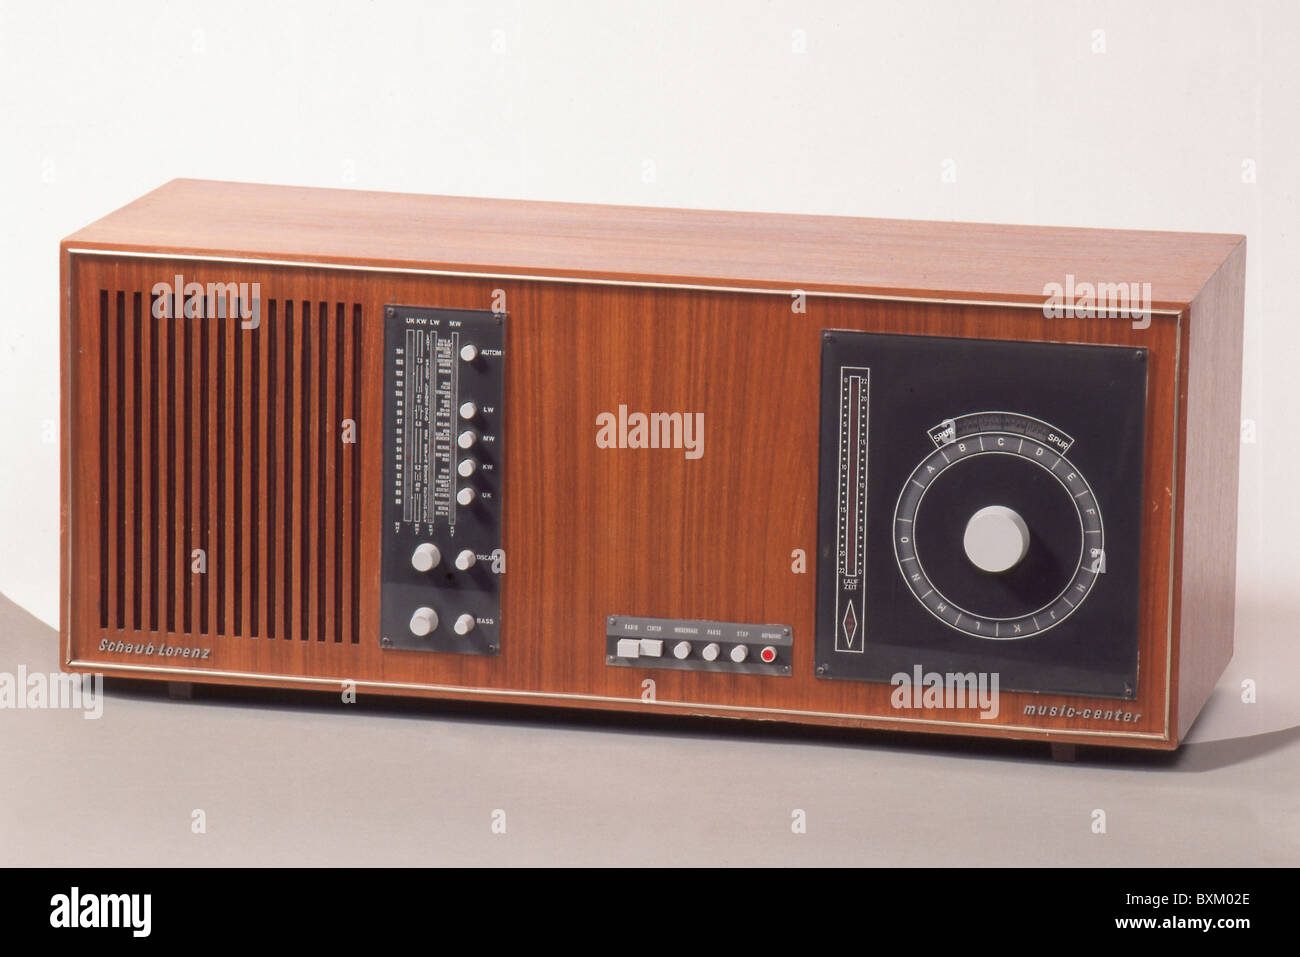 broadcast radio radio set schaub lorenz music center 5001 germany stock photo royalty free. Black Bedroom Furniture Sets. Home Design Ideas